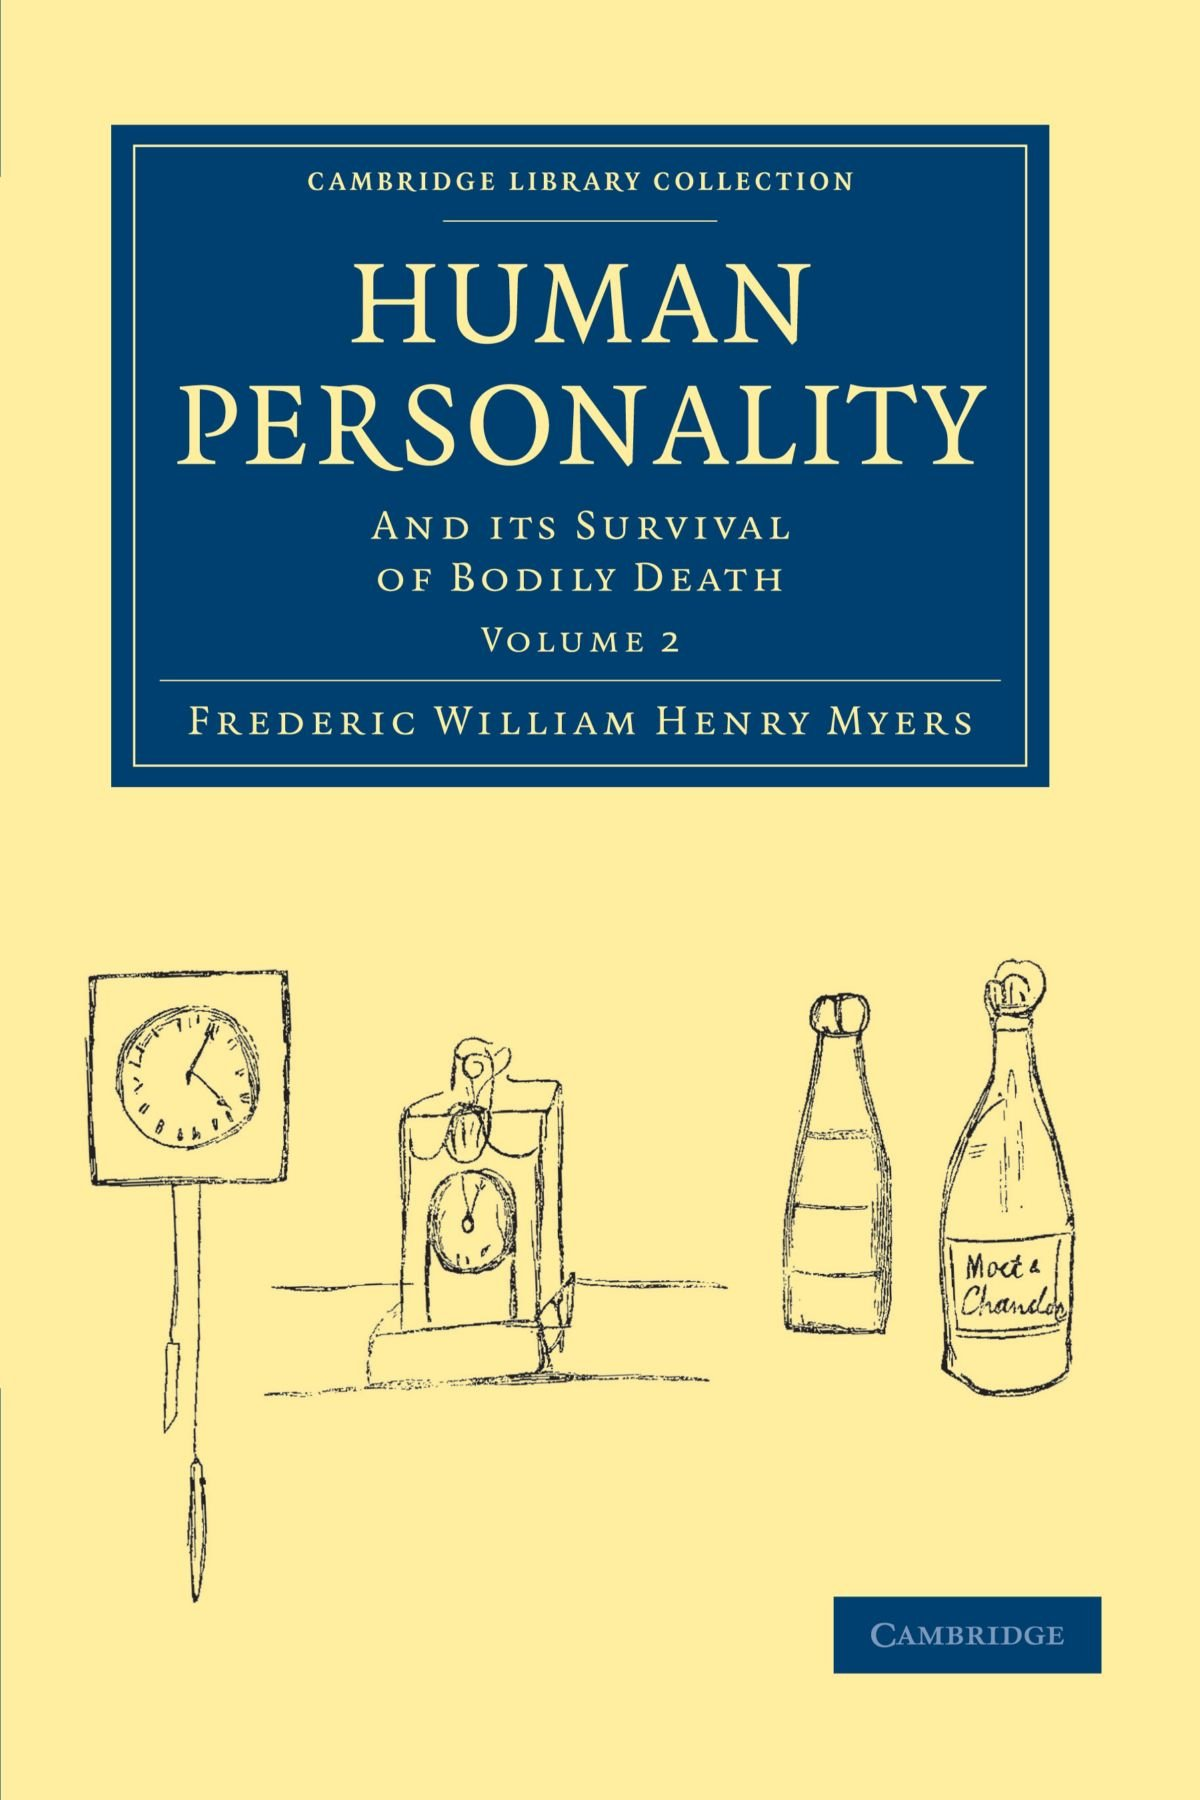 Human Personality: And its Survival of Bodily Death (Cambridge Library Collection - Spiritualism and Esoteric Knowledge) (Volume 2) by Cambridge University Press